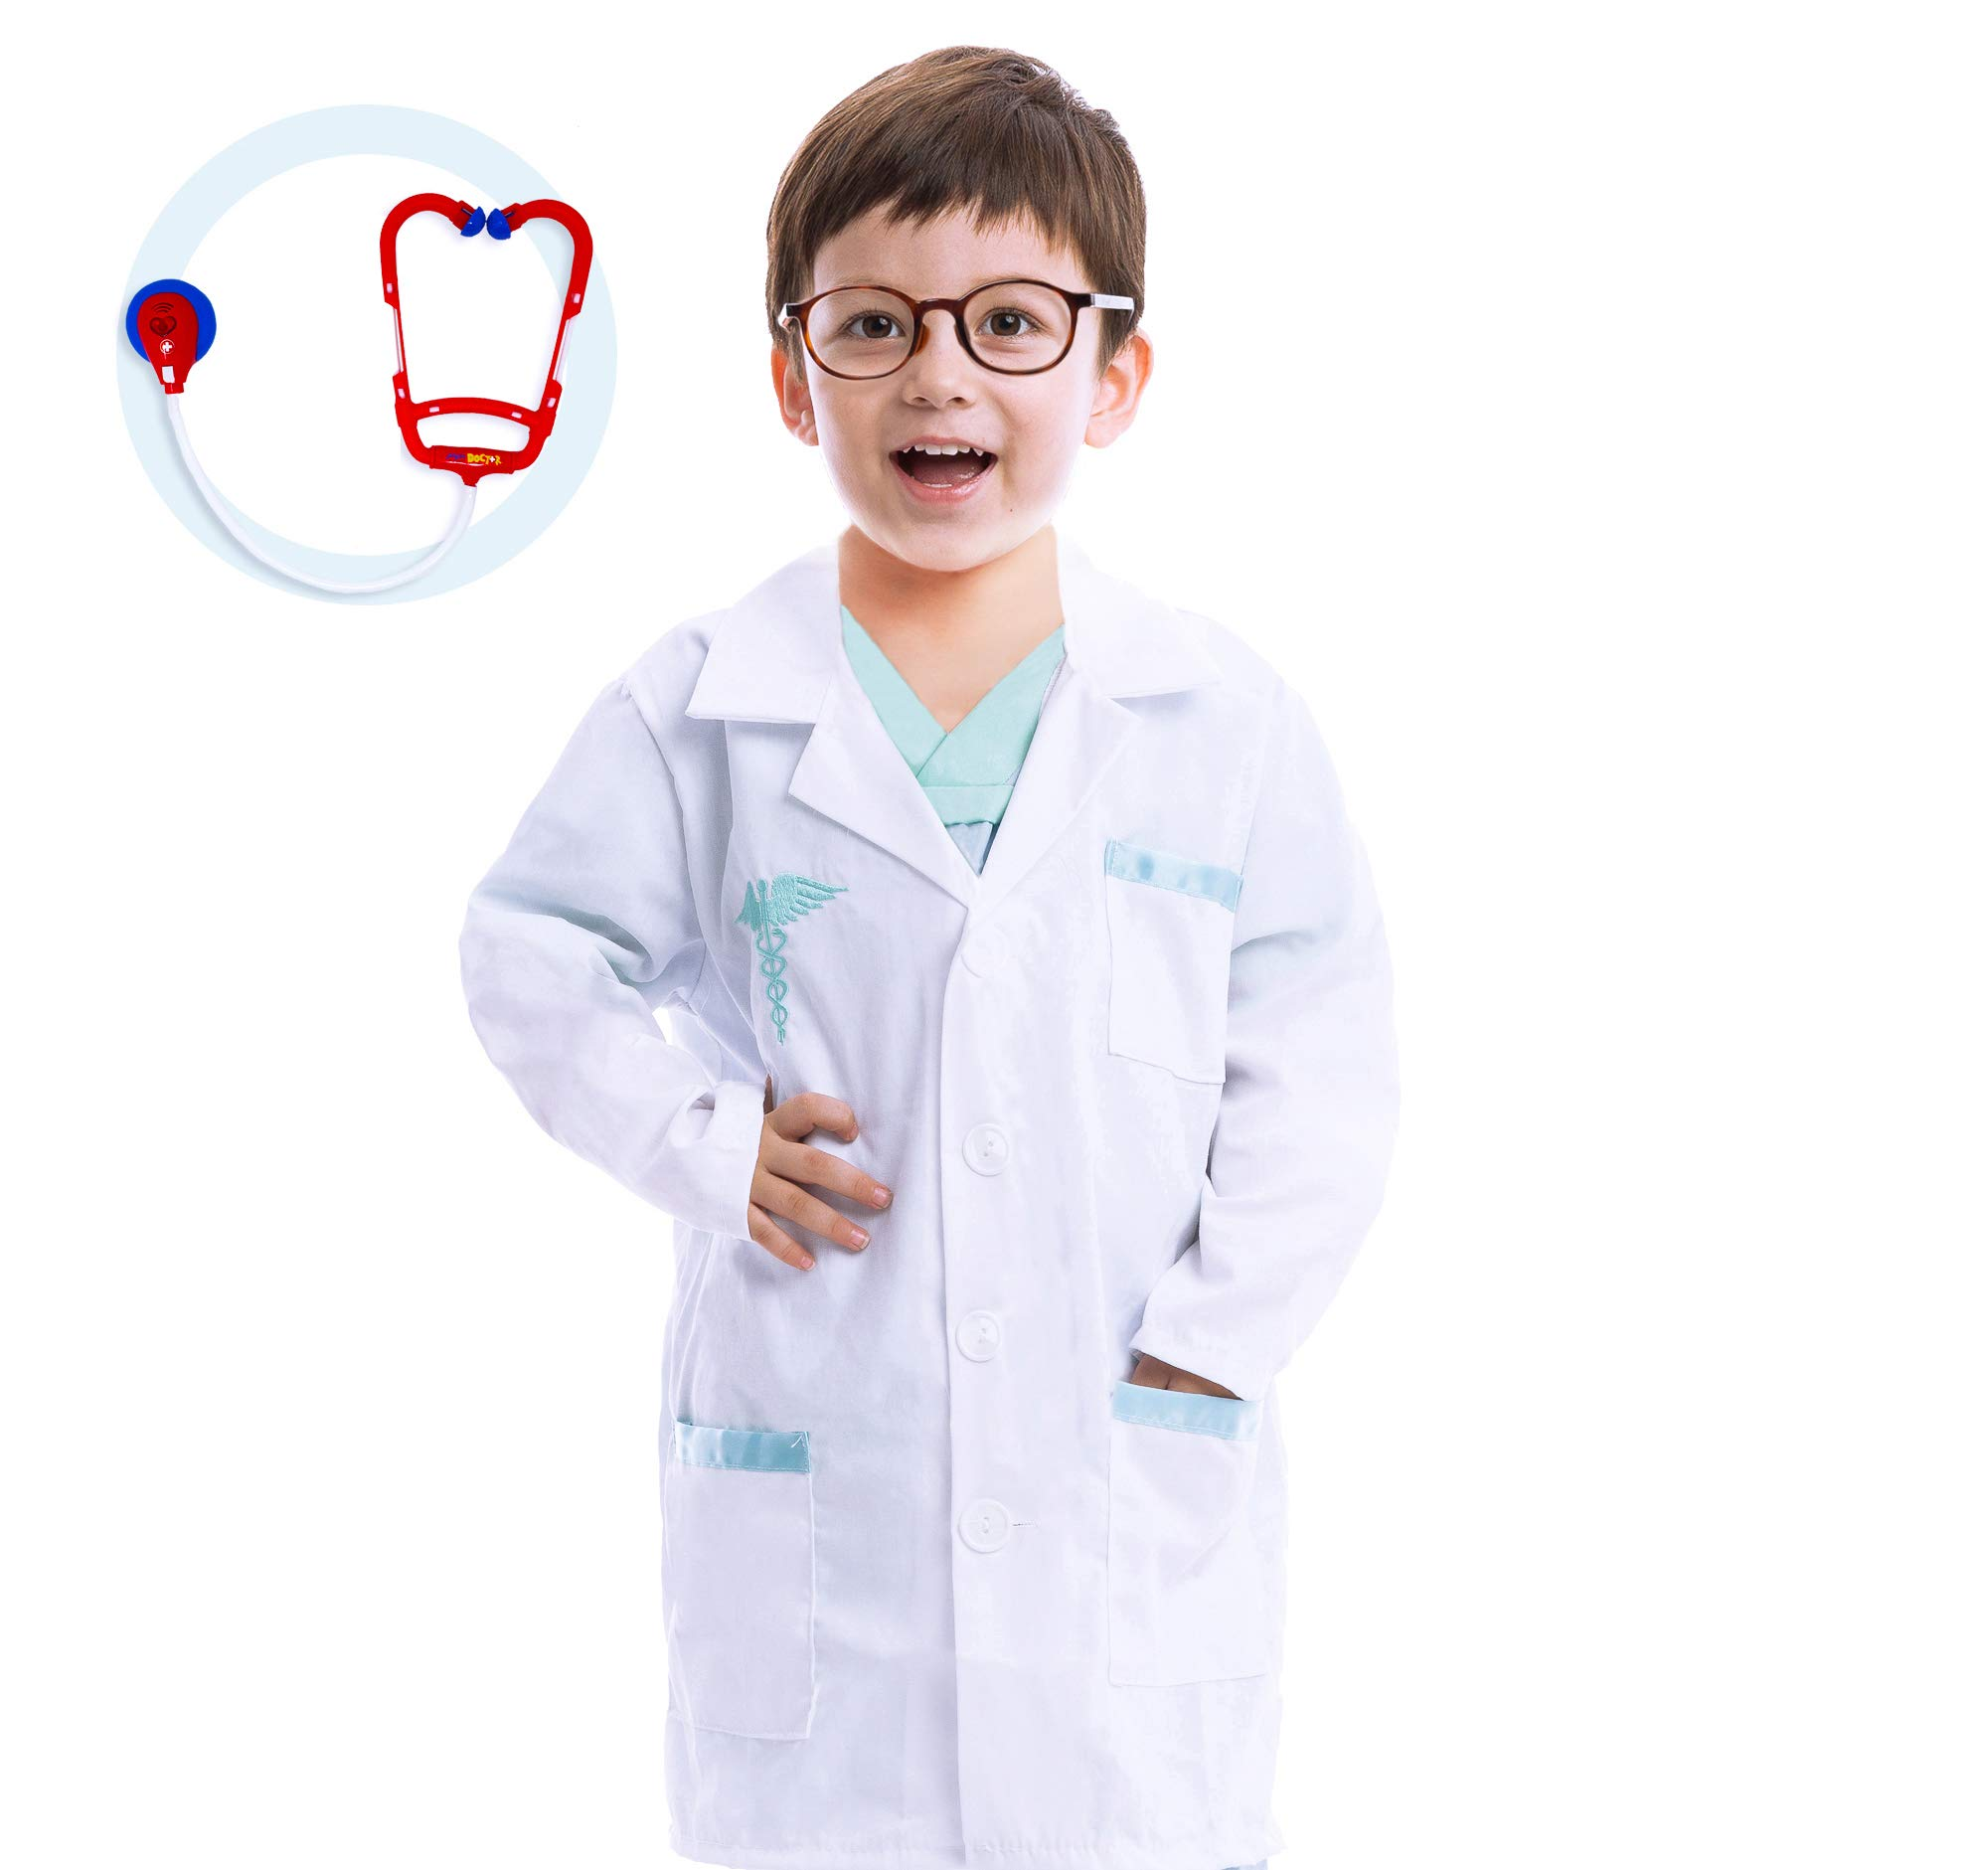 Jr. Doctor Lab Coat Deluxe Kids Toddler Costume Set for Halloween Dress Up Party (3T) White